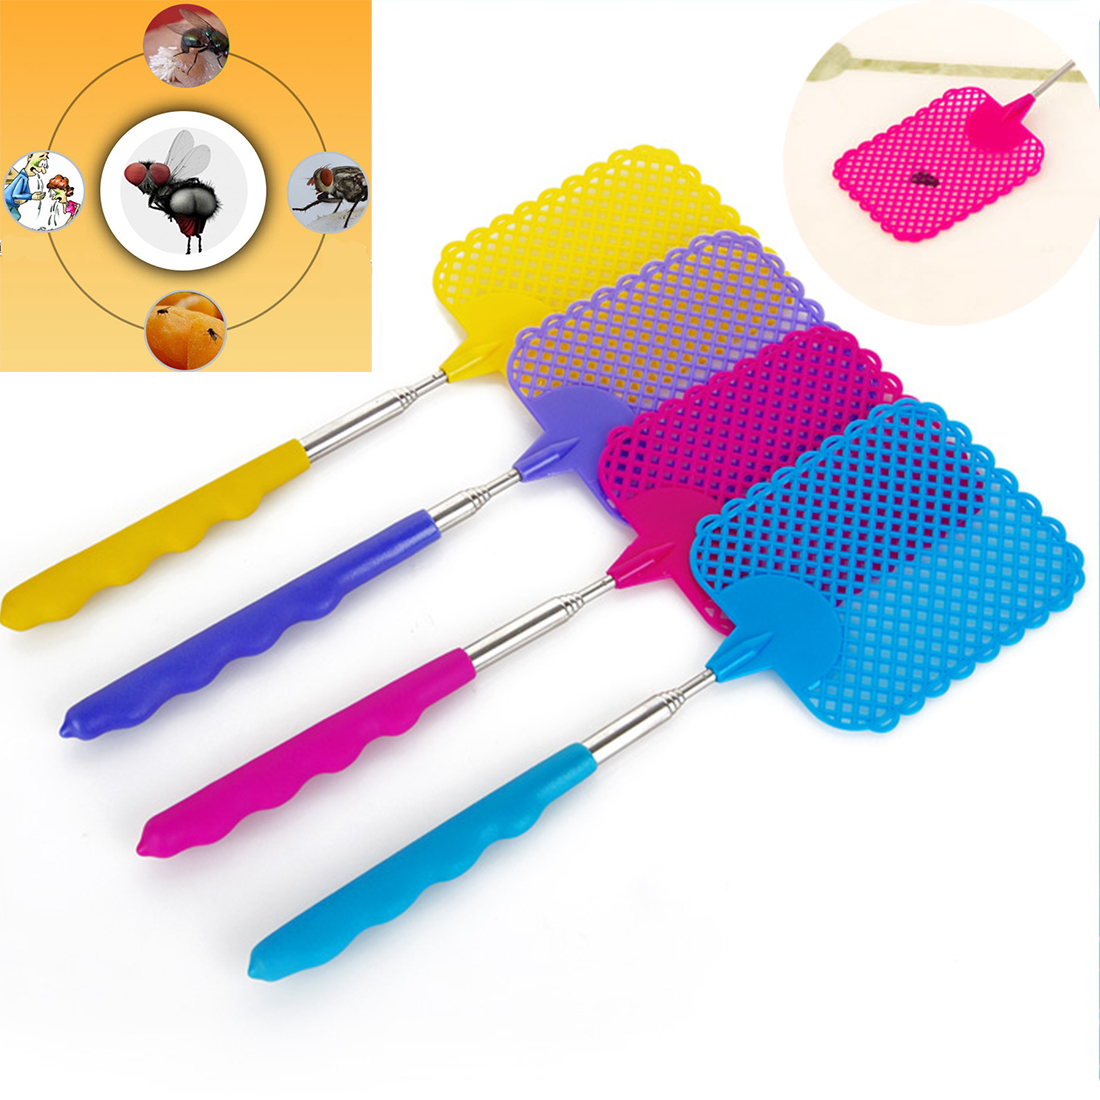 Portable Telescopic Stainless Steel Anti Mosquito Pest Swatters Fly Swatter Bat Circuit Homemade Projects Fashion Handheld Electronic Bug Zapper Racket Random Color